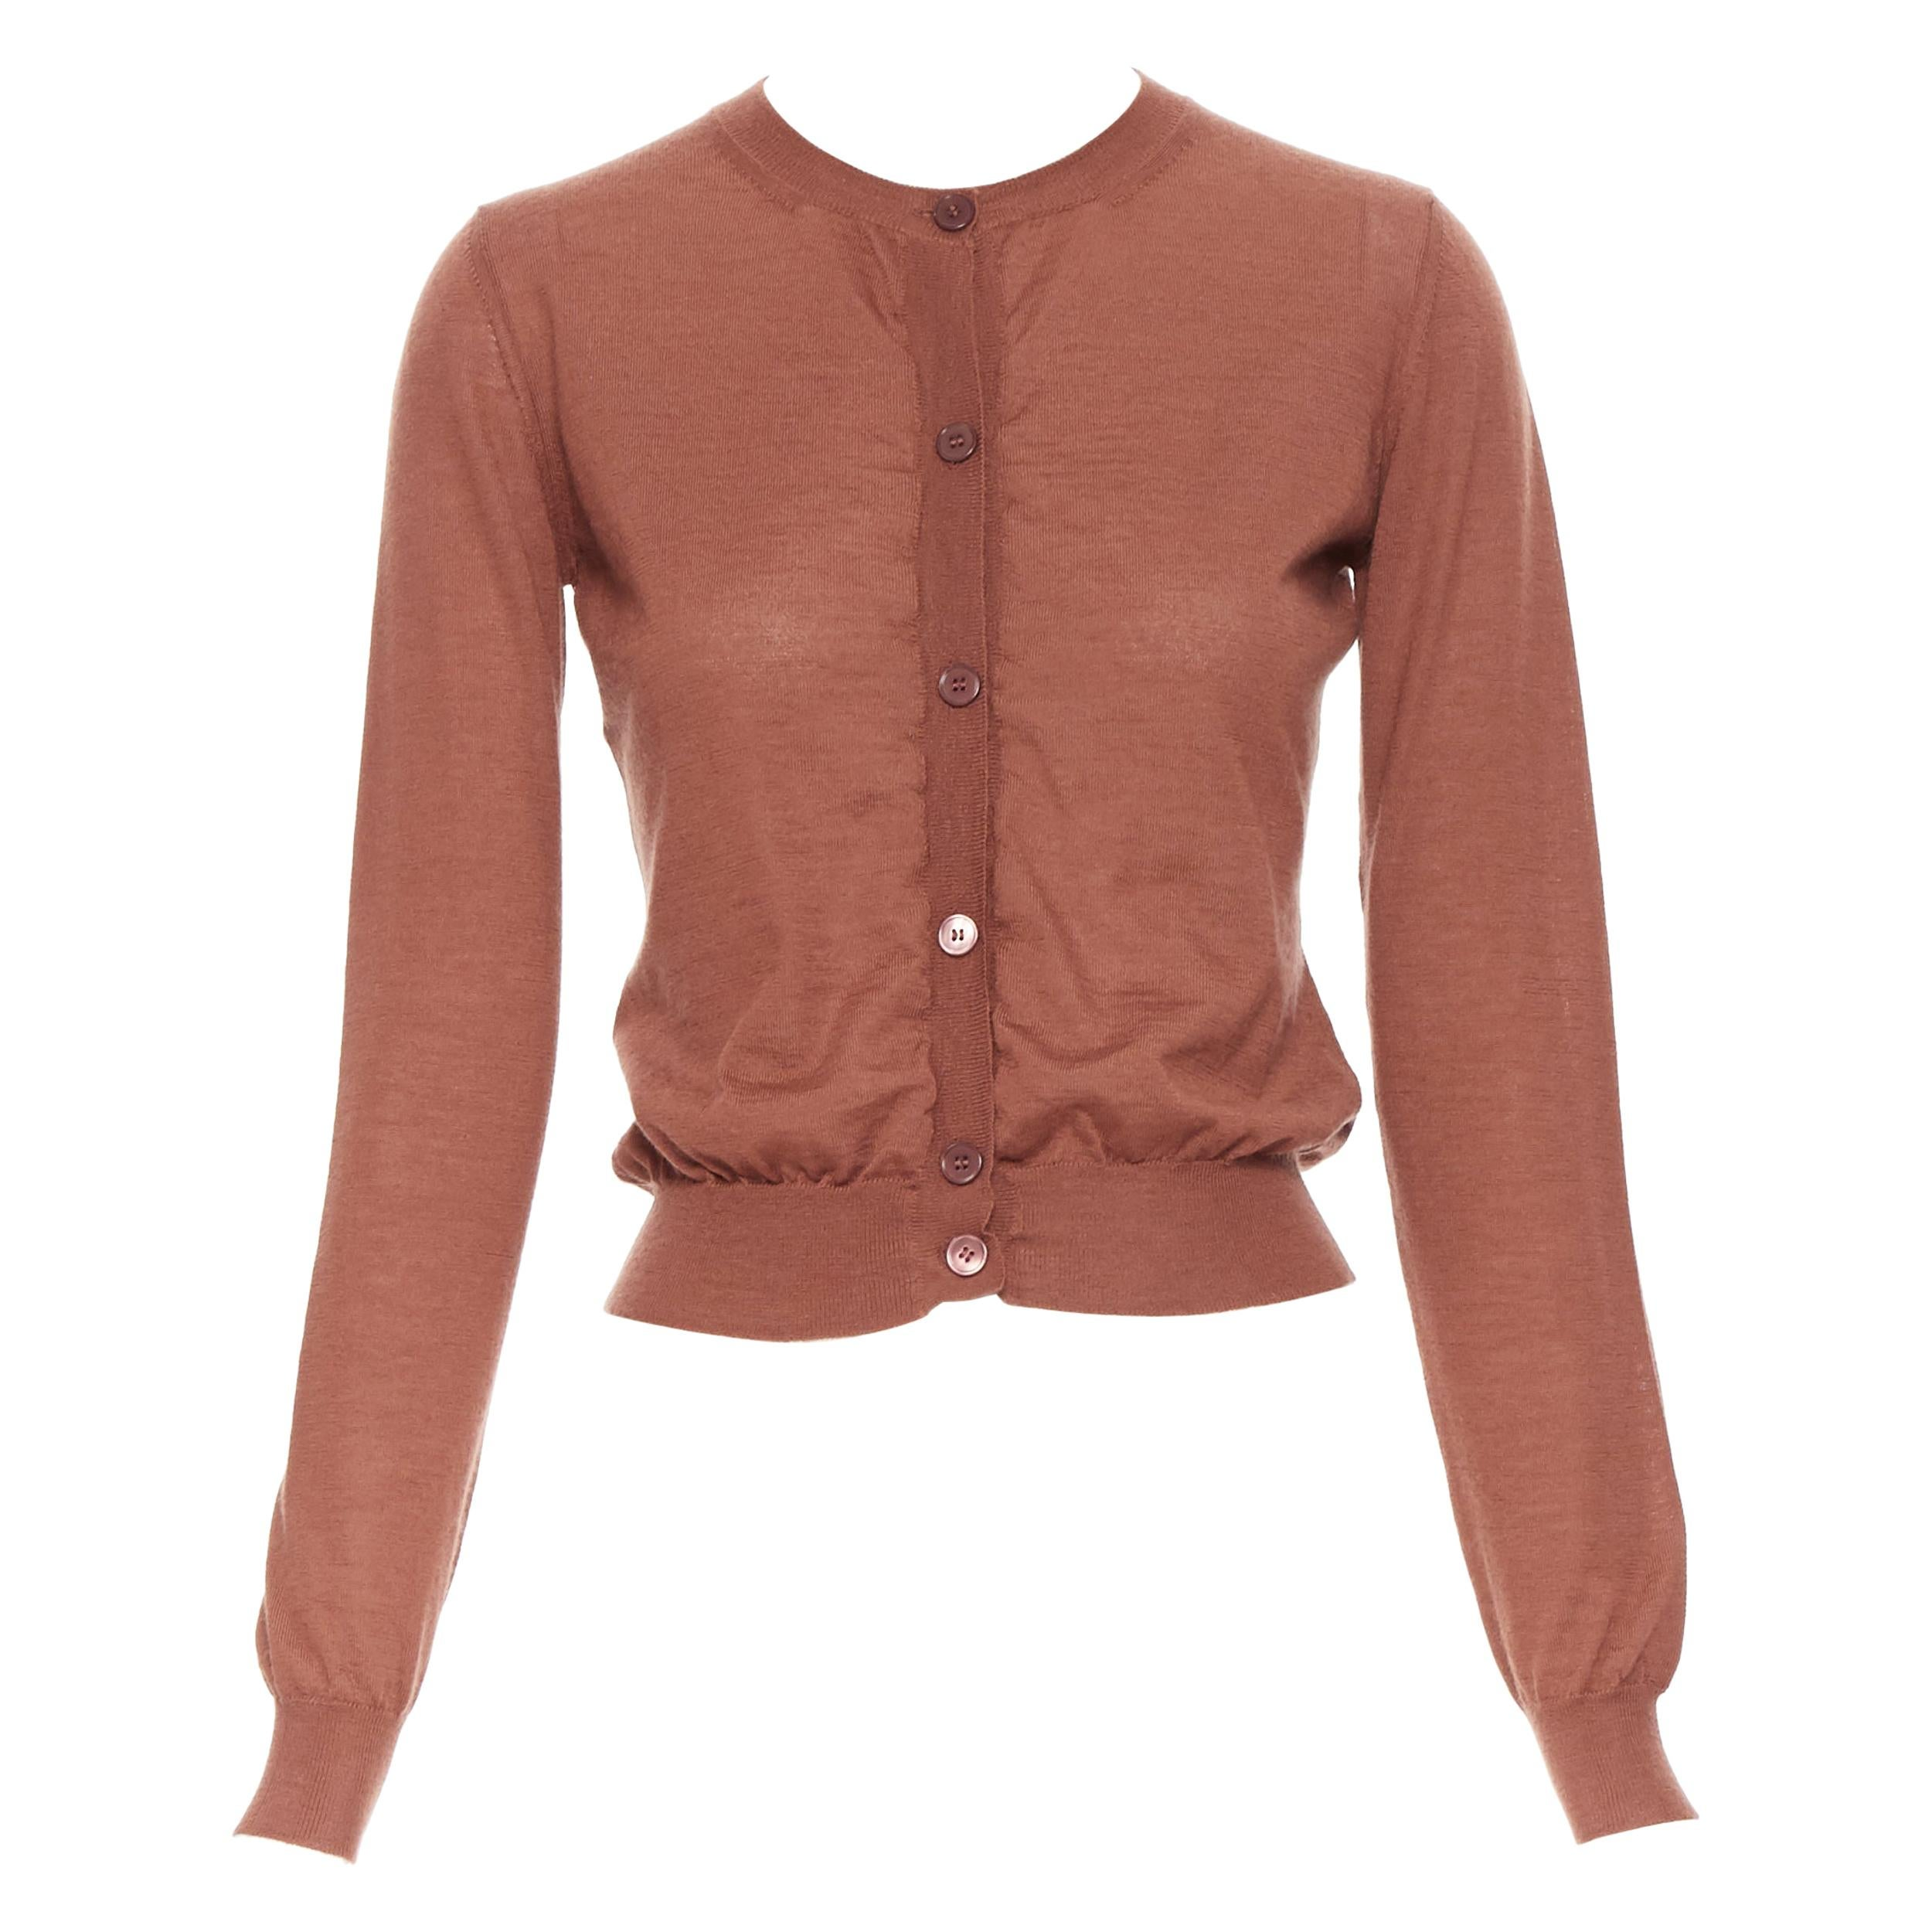 MARNI 100% cashmere brich brown long sleeve button cardigan sweater IT38 XS